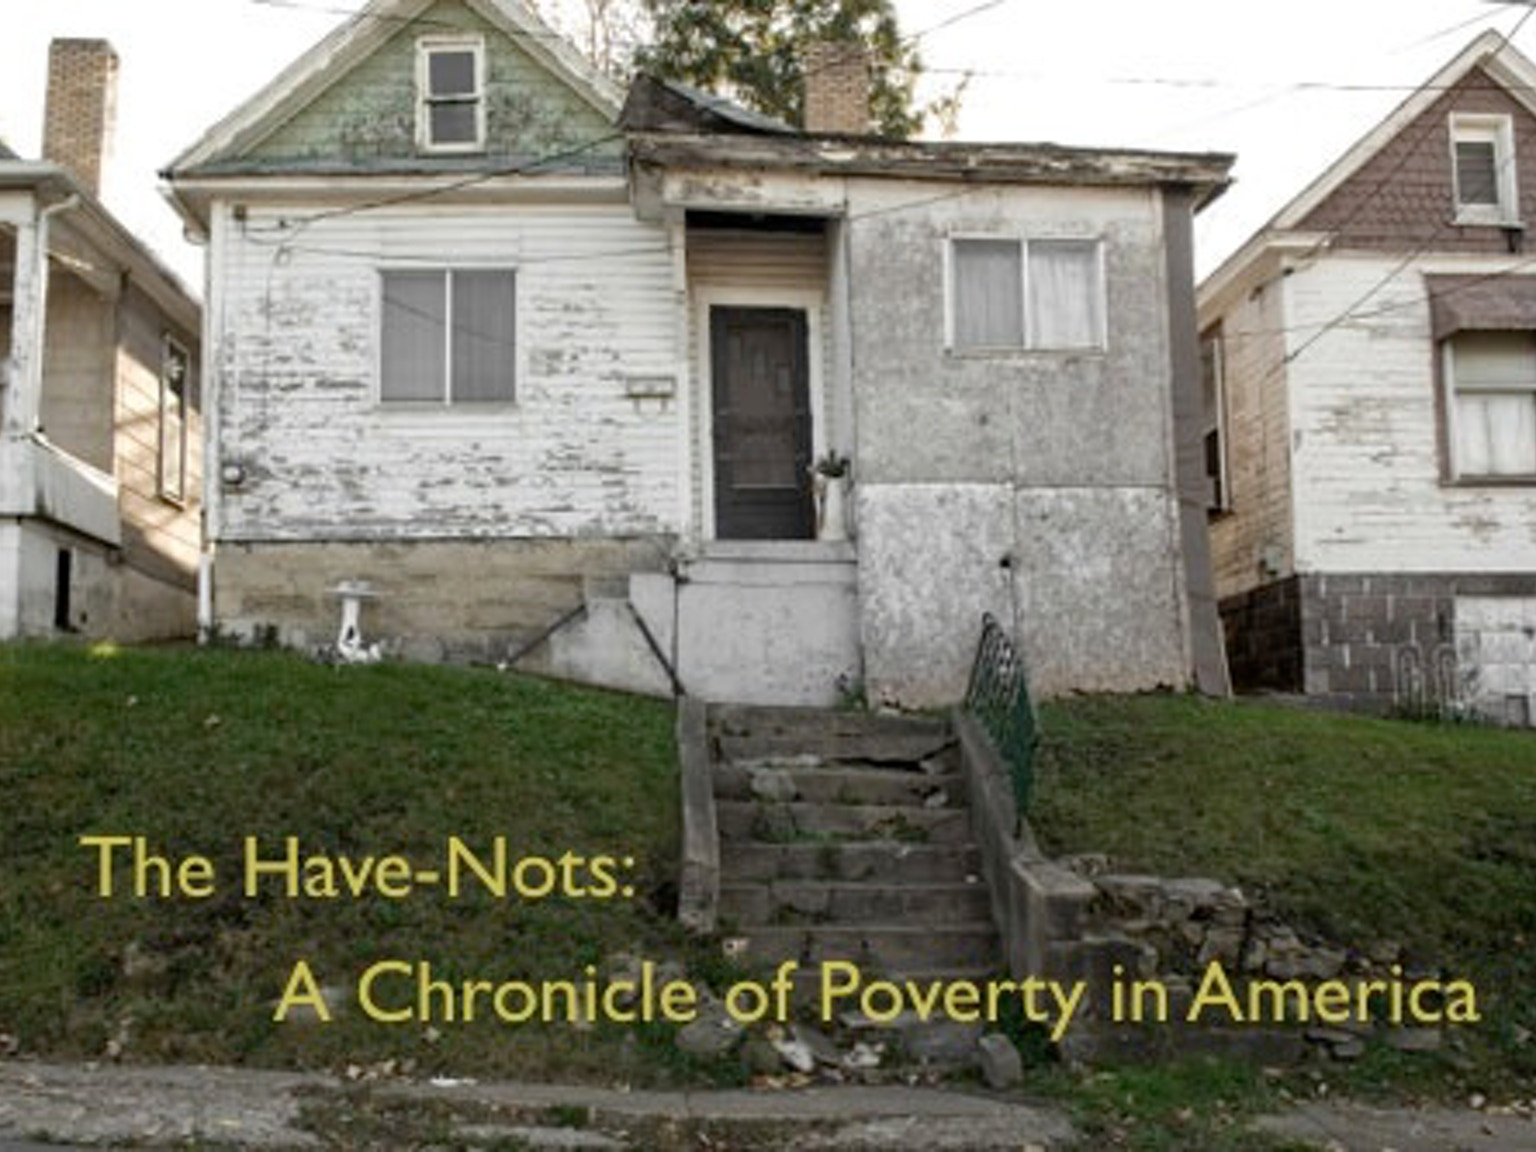 essays on poverty in america essays on poverty in america get help from best